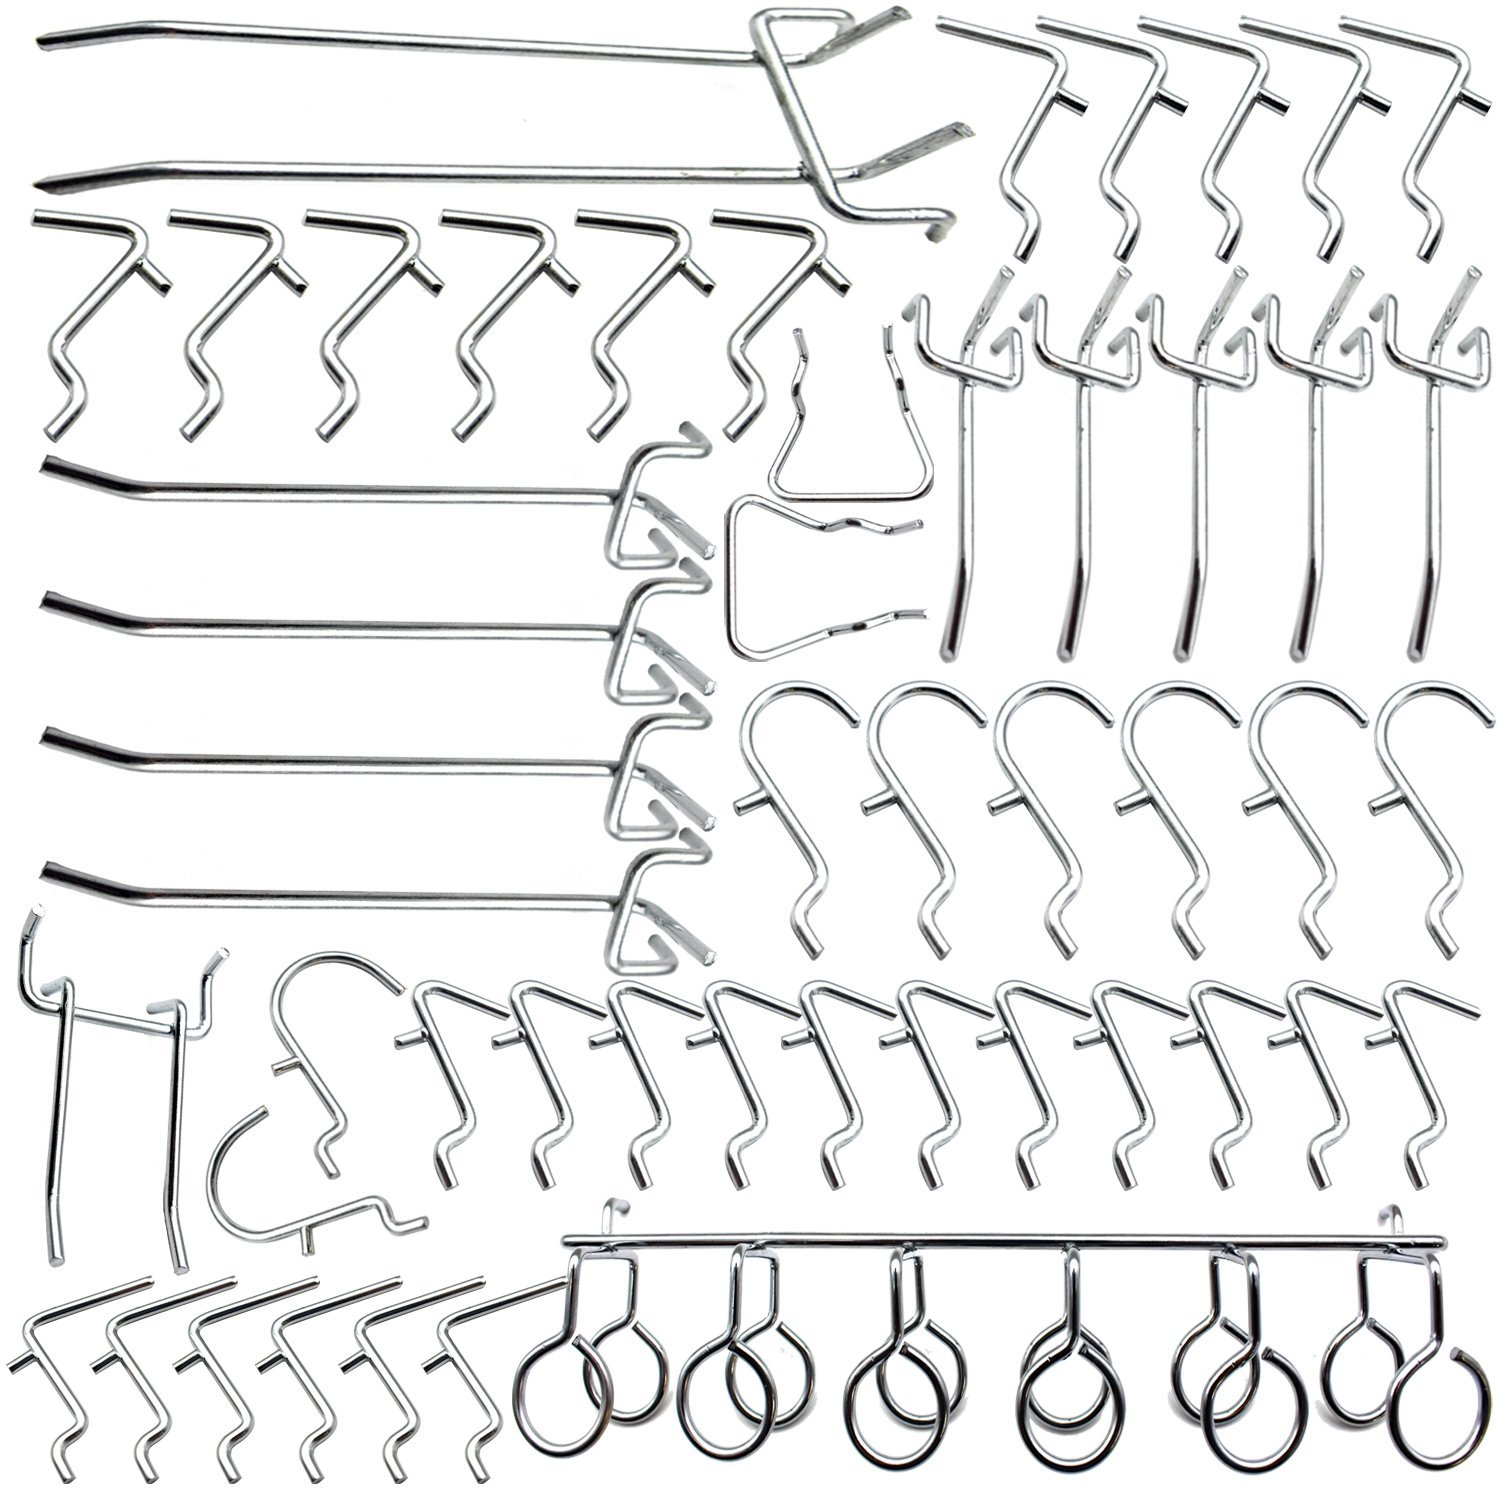 Cankadesot Hook Metal Pegboard and Assorted Shelving 50 Piece